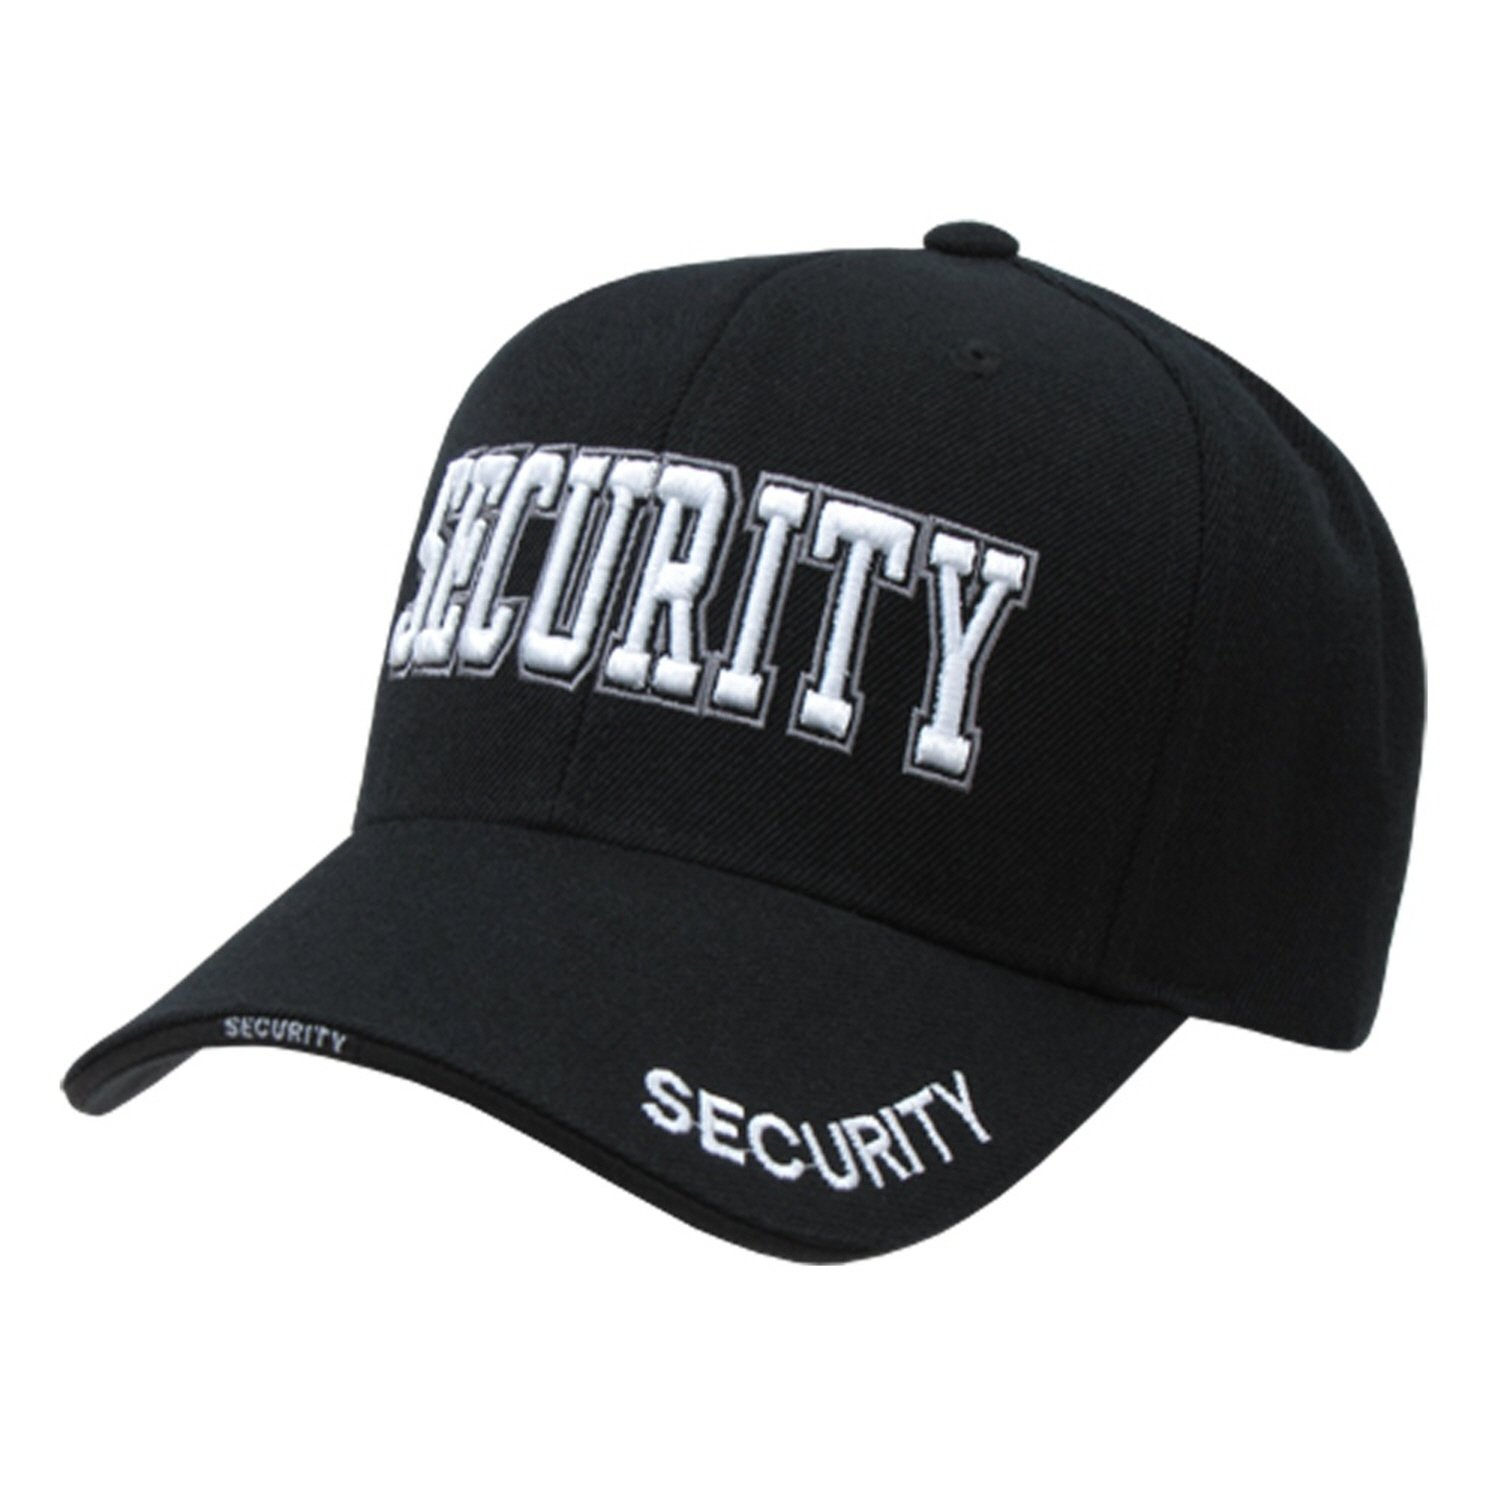 High Embroidered Law Enforcement Baseball Caps Hats (Adjustable , SECURITY)